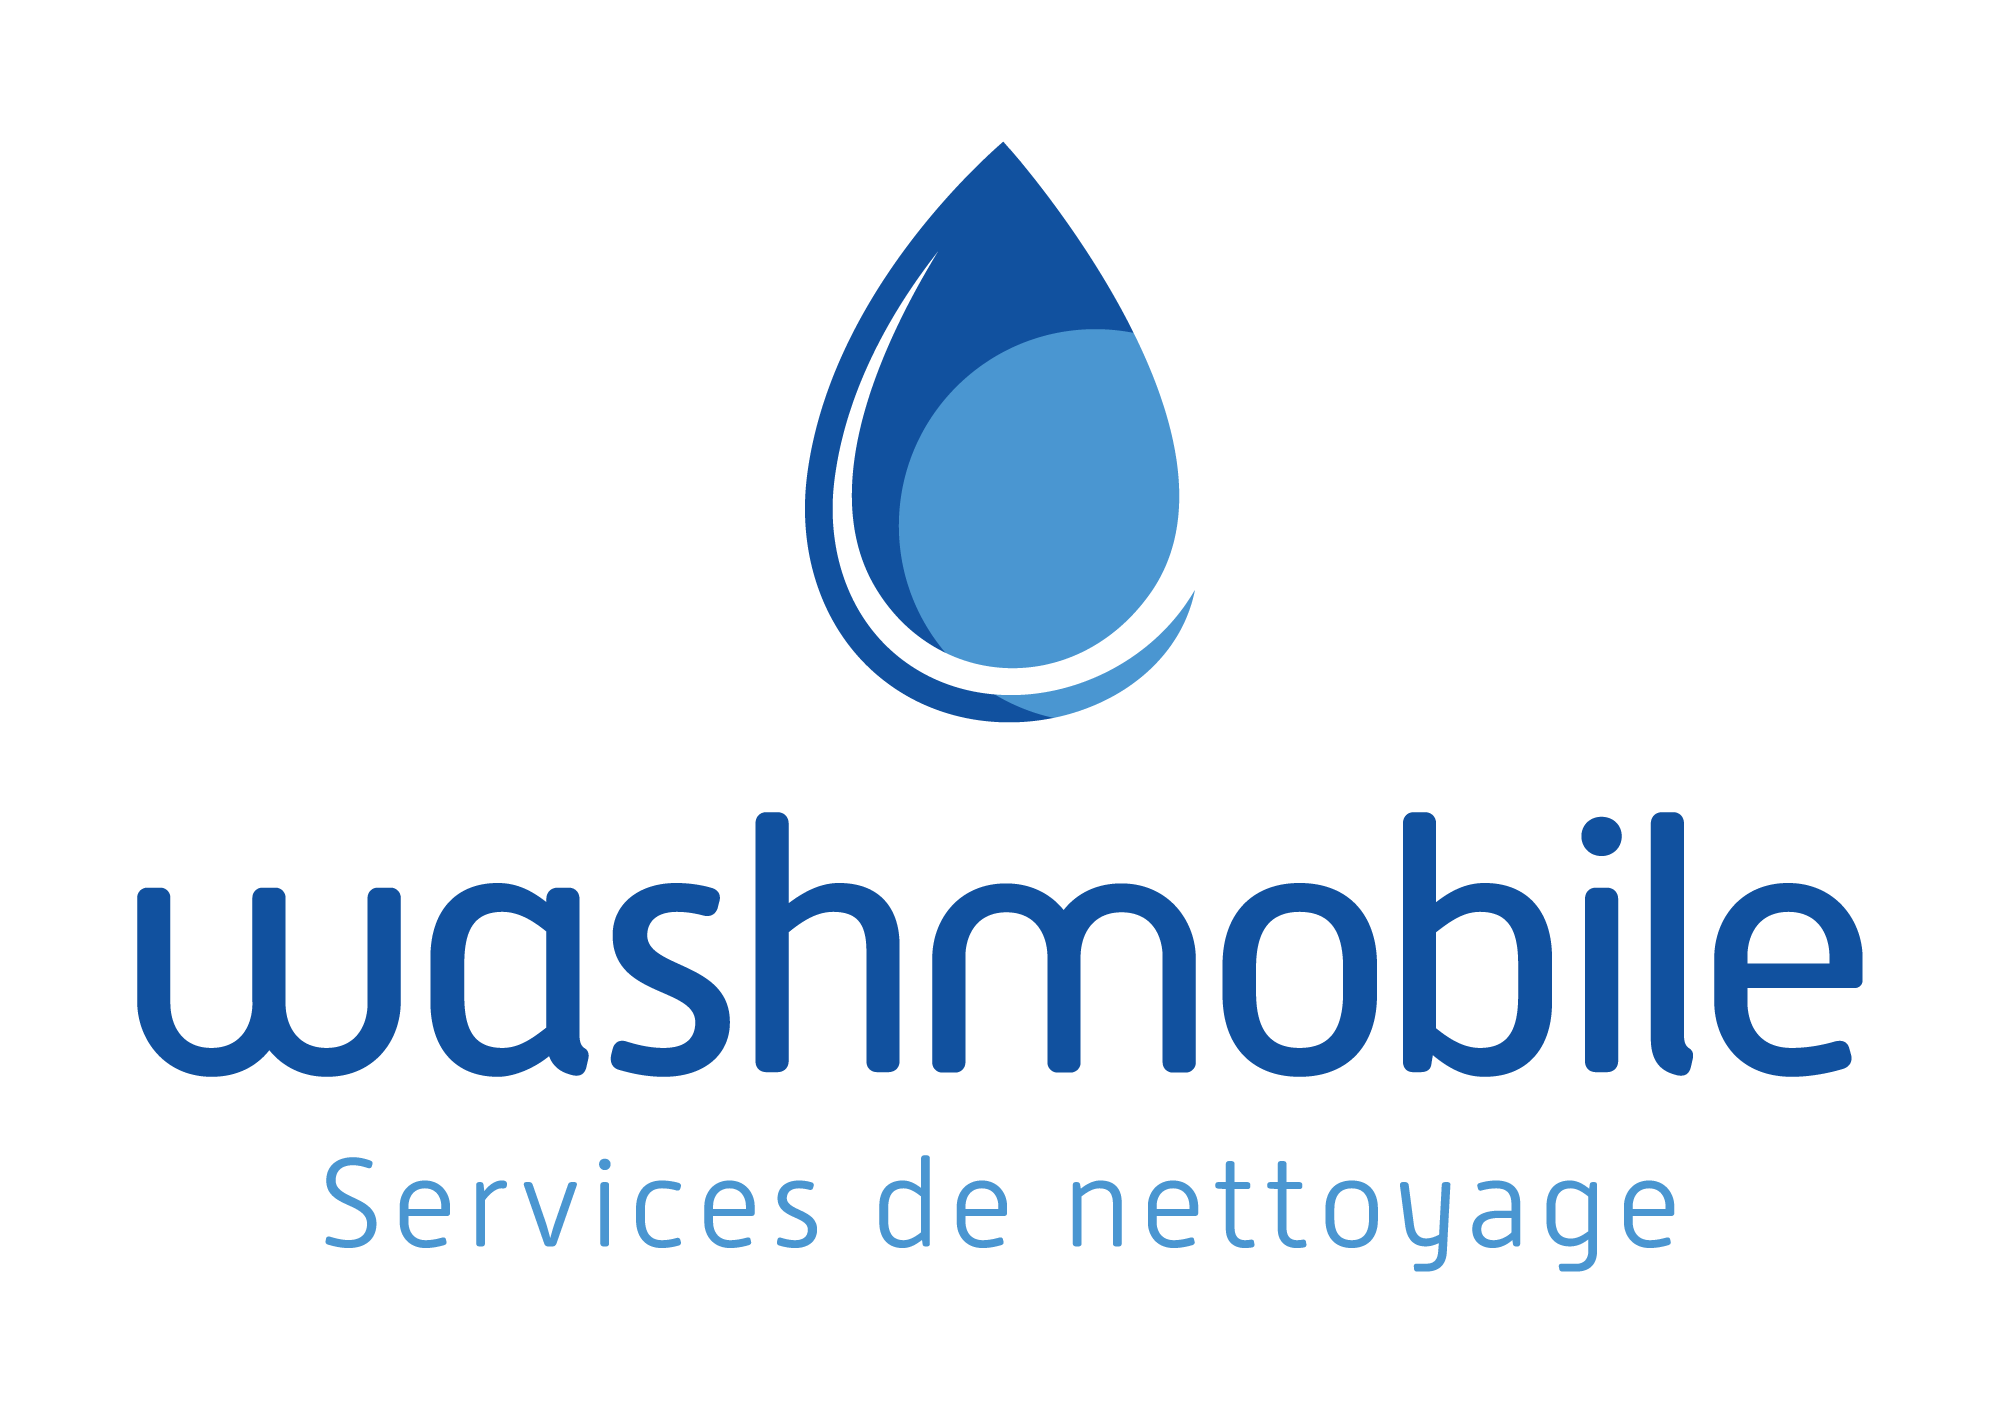 WashMobile